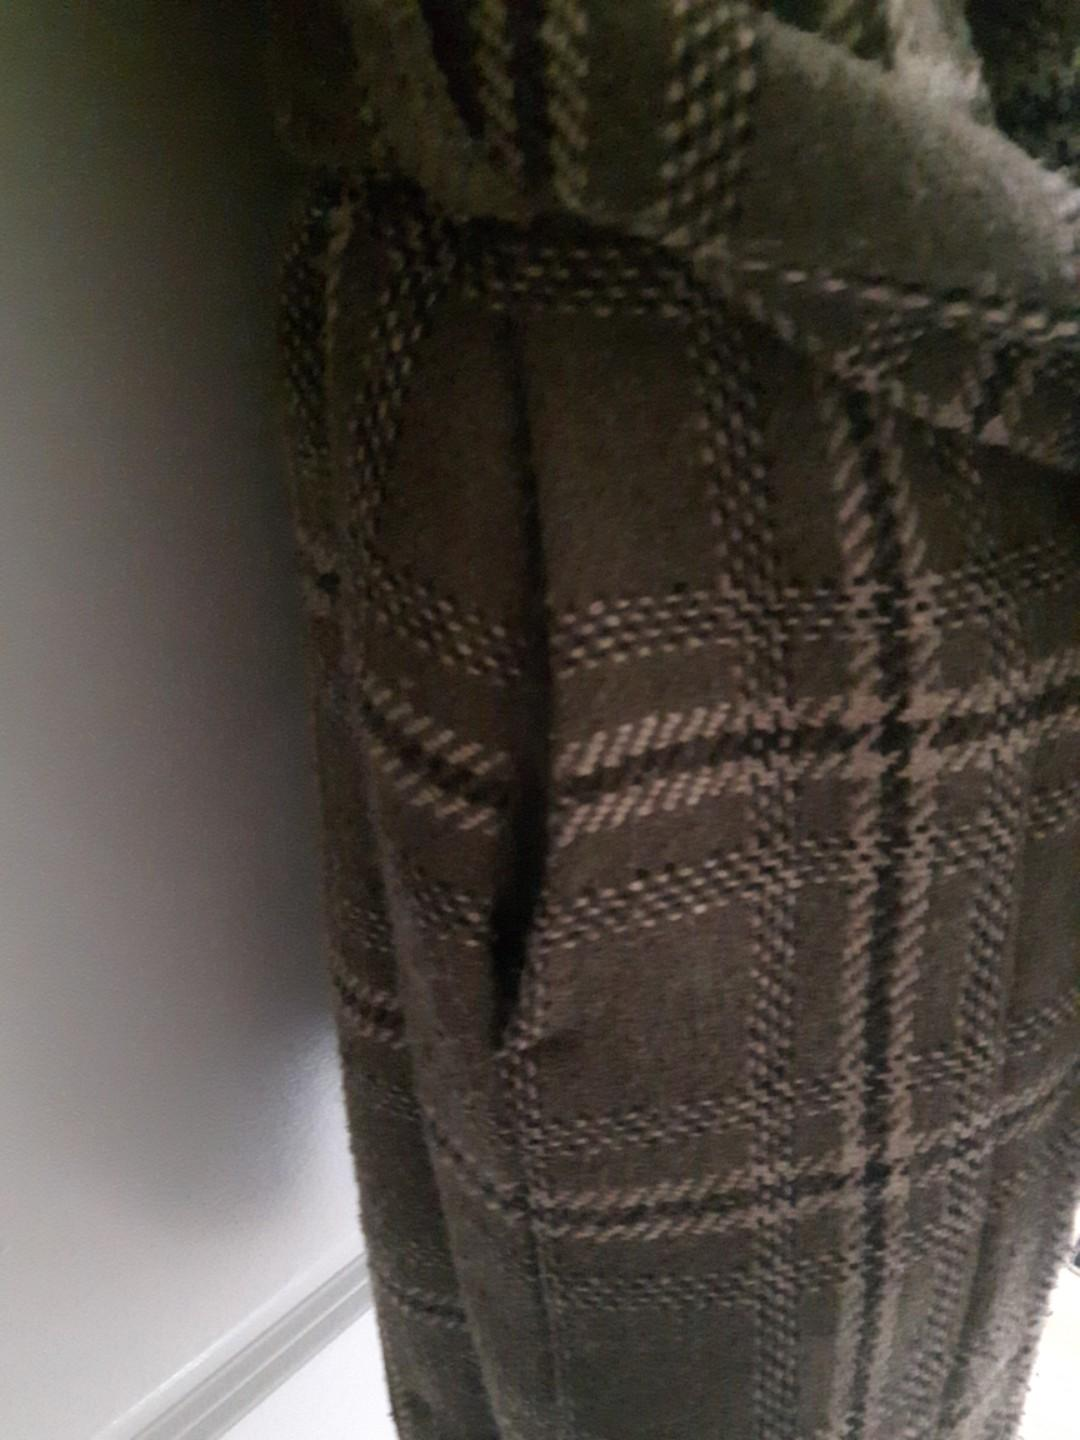 LOWERED-Peacoat in ashy brown plaid pattern Size 4